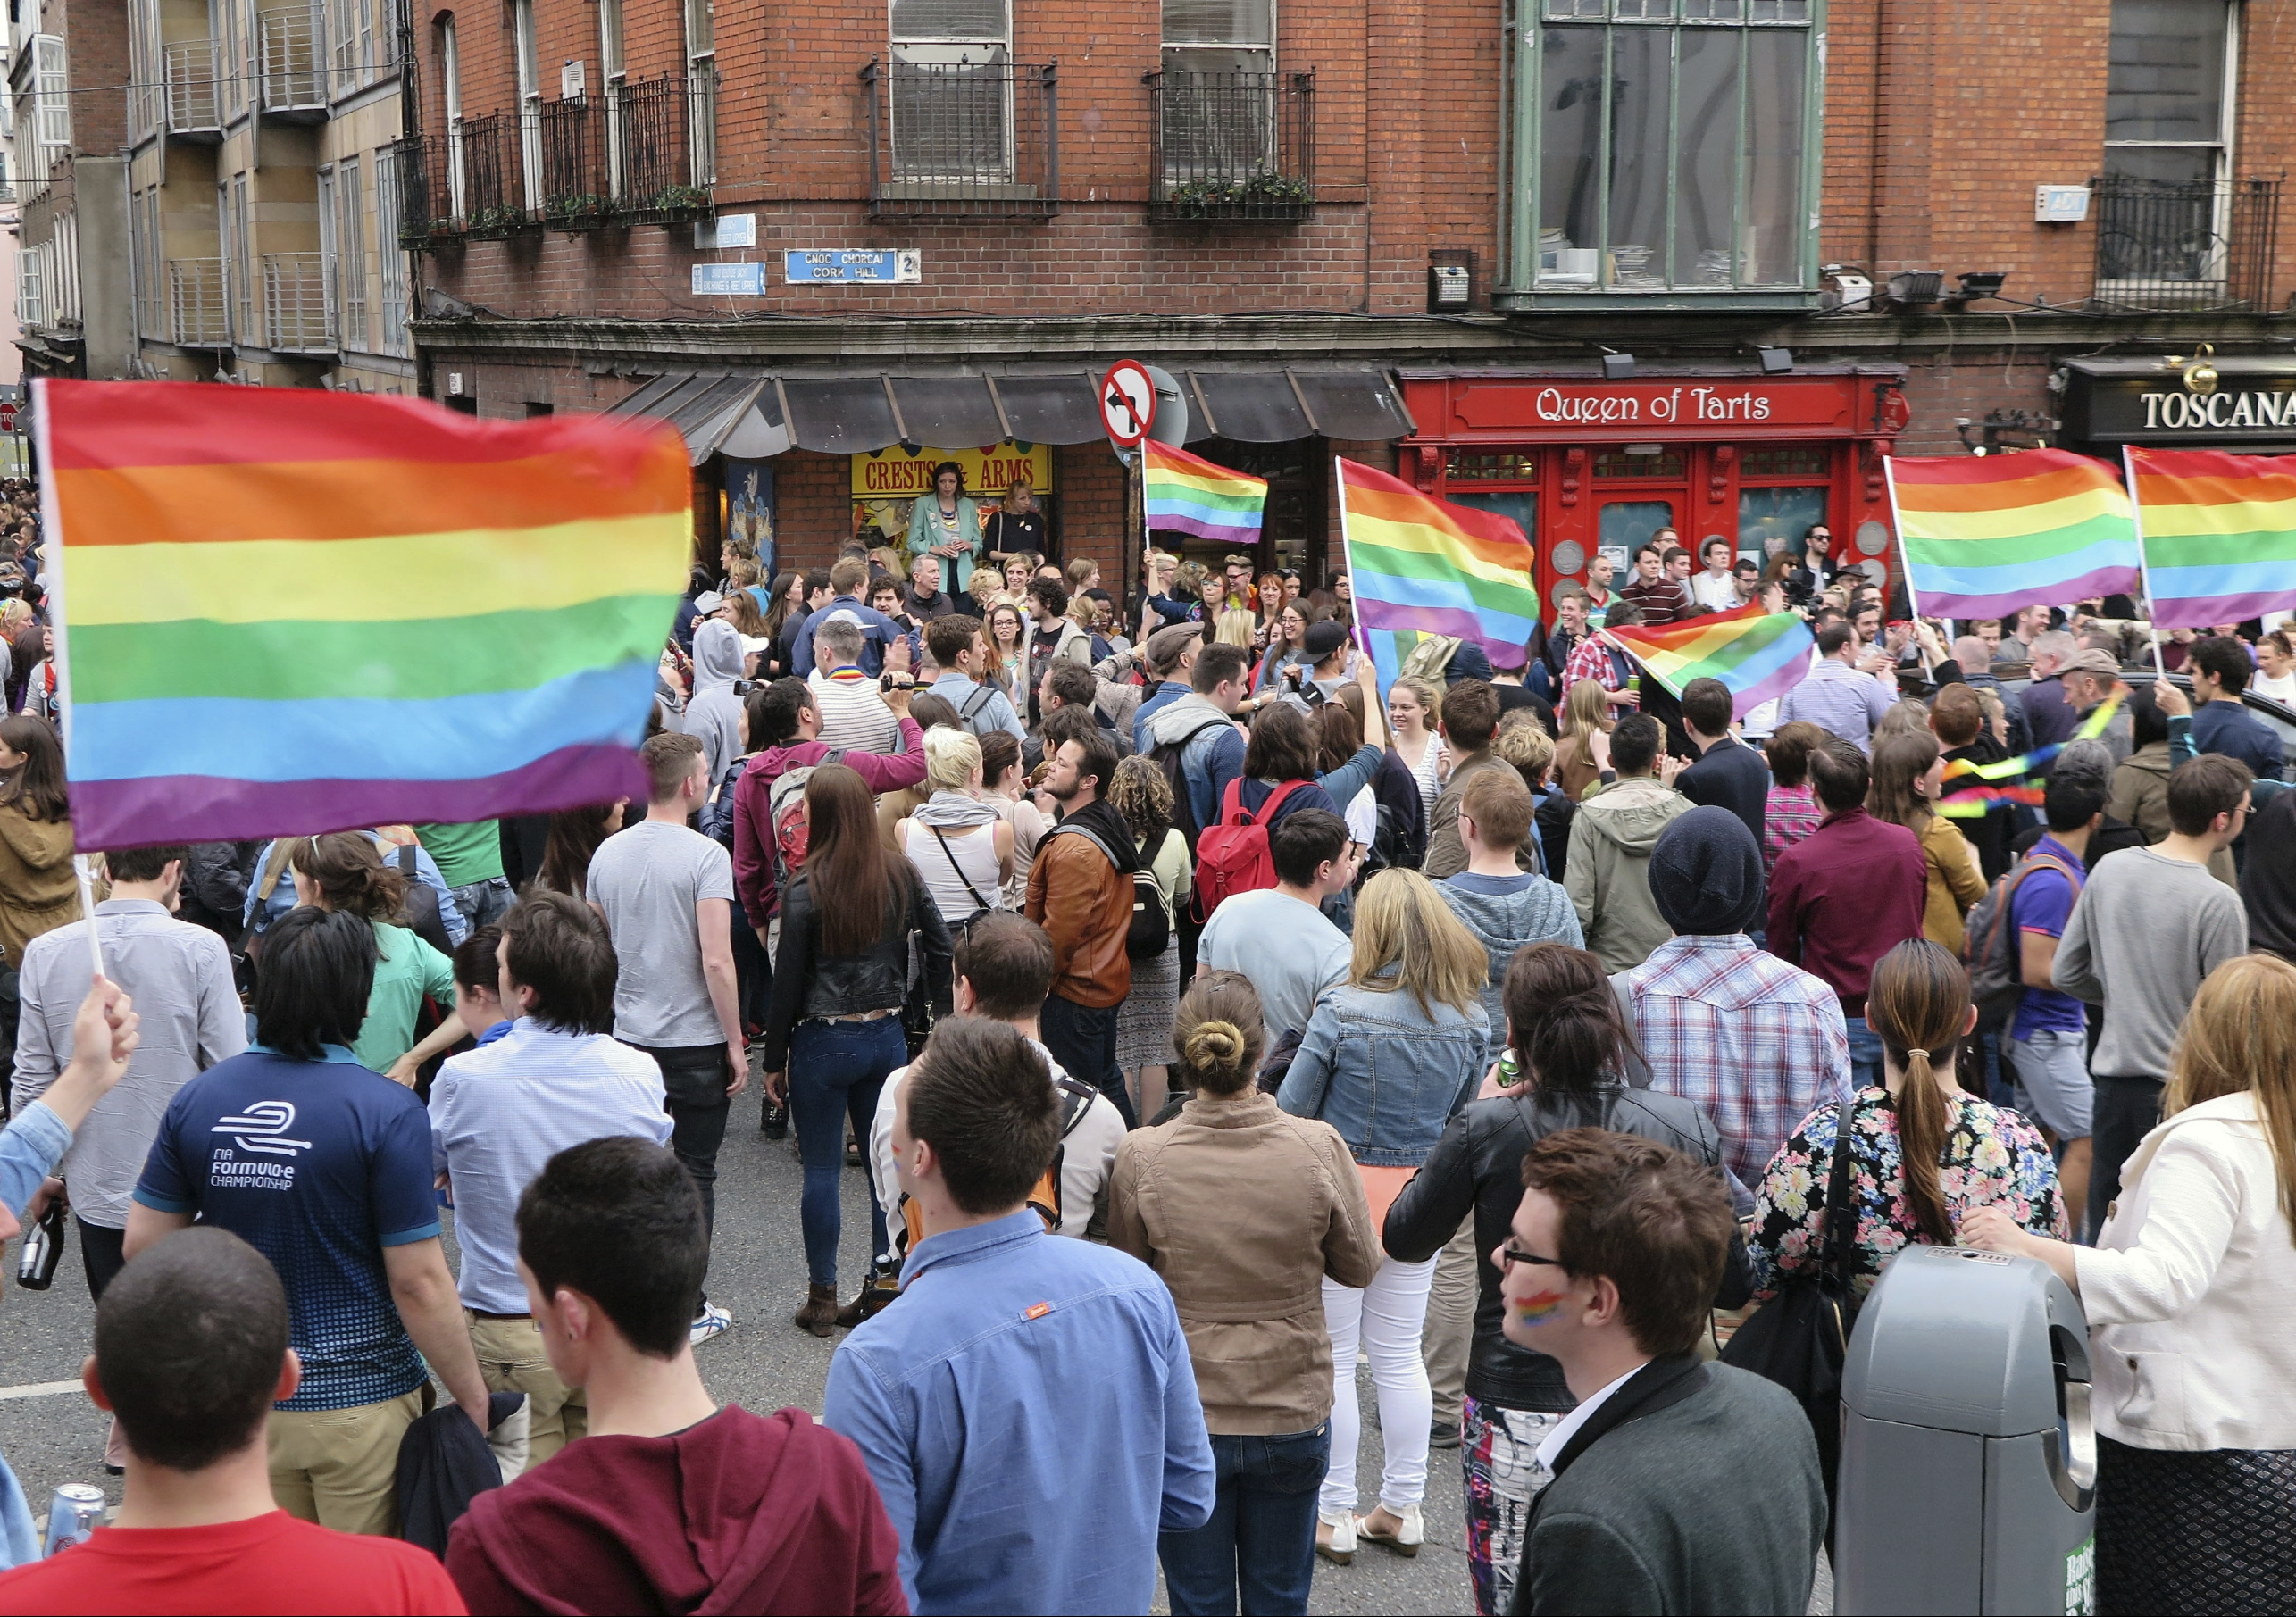 Supporters of marriage equality in Ireland celebrate victory in front of Dublin Castle. Image: iStock